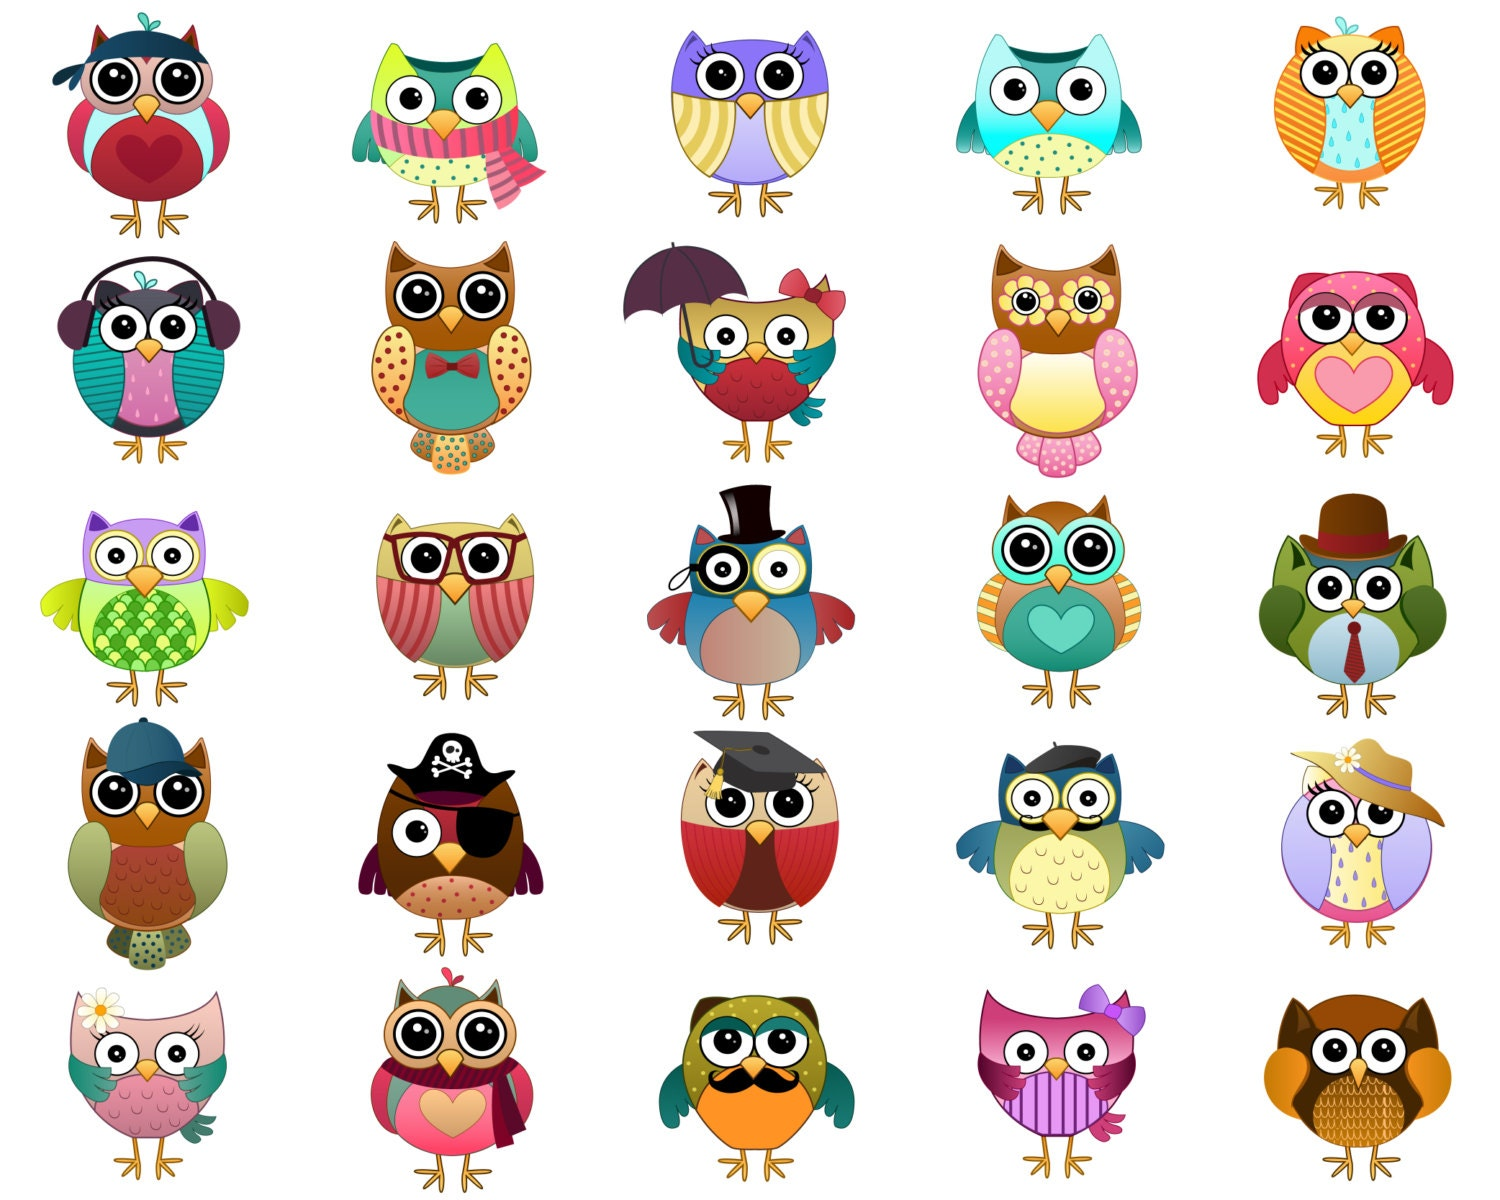 Cute Owl Characters Clip Art - Set of 25 Hand Drawn 300 ...